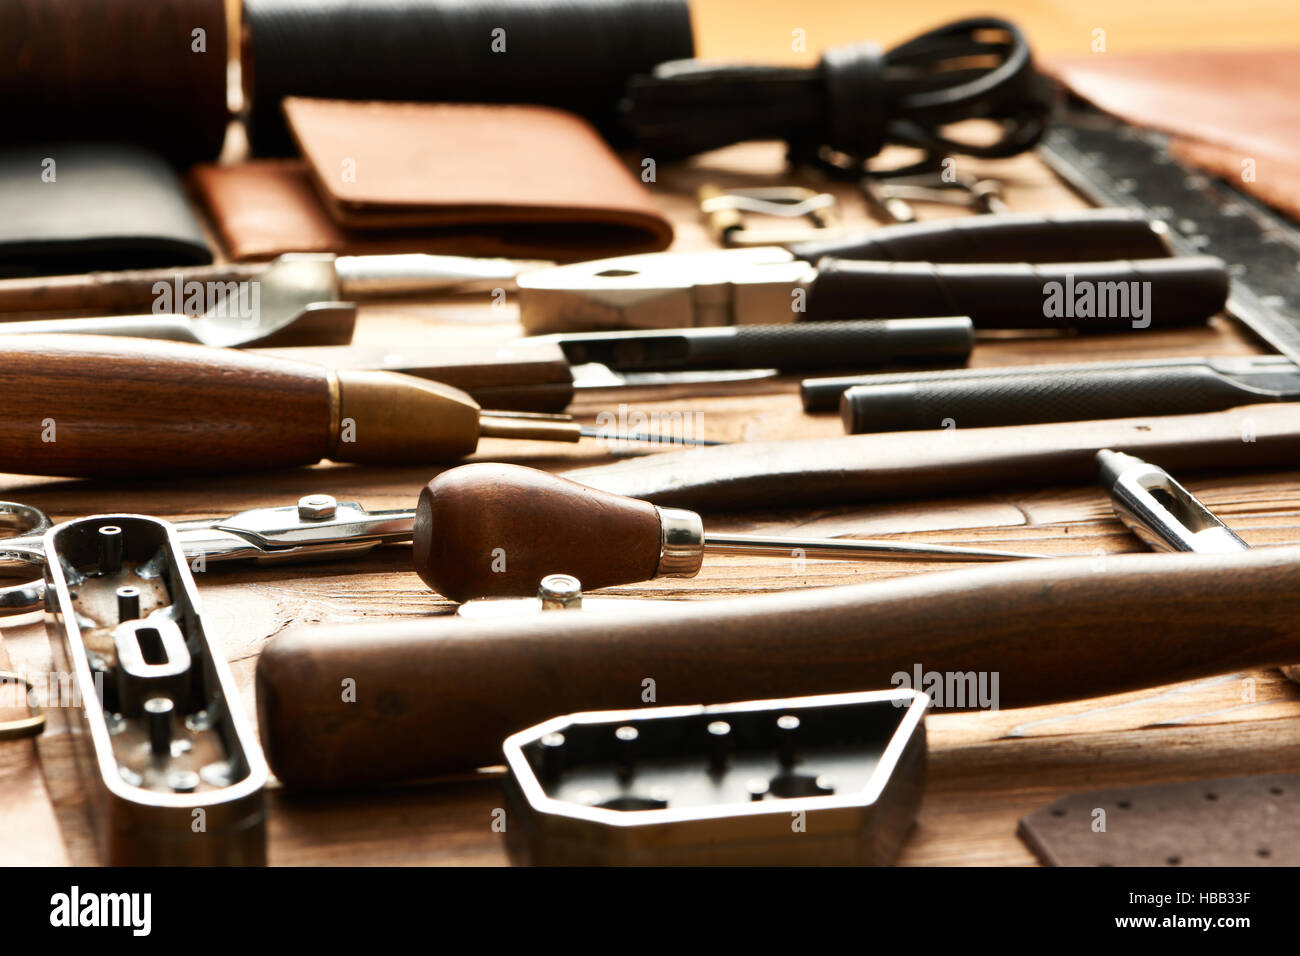 Leather crafting tools - Stock Image